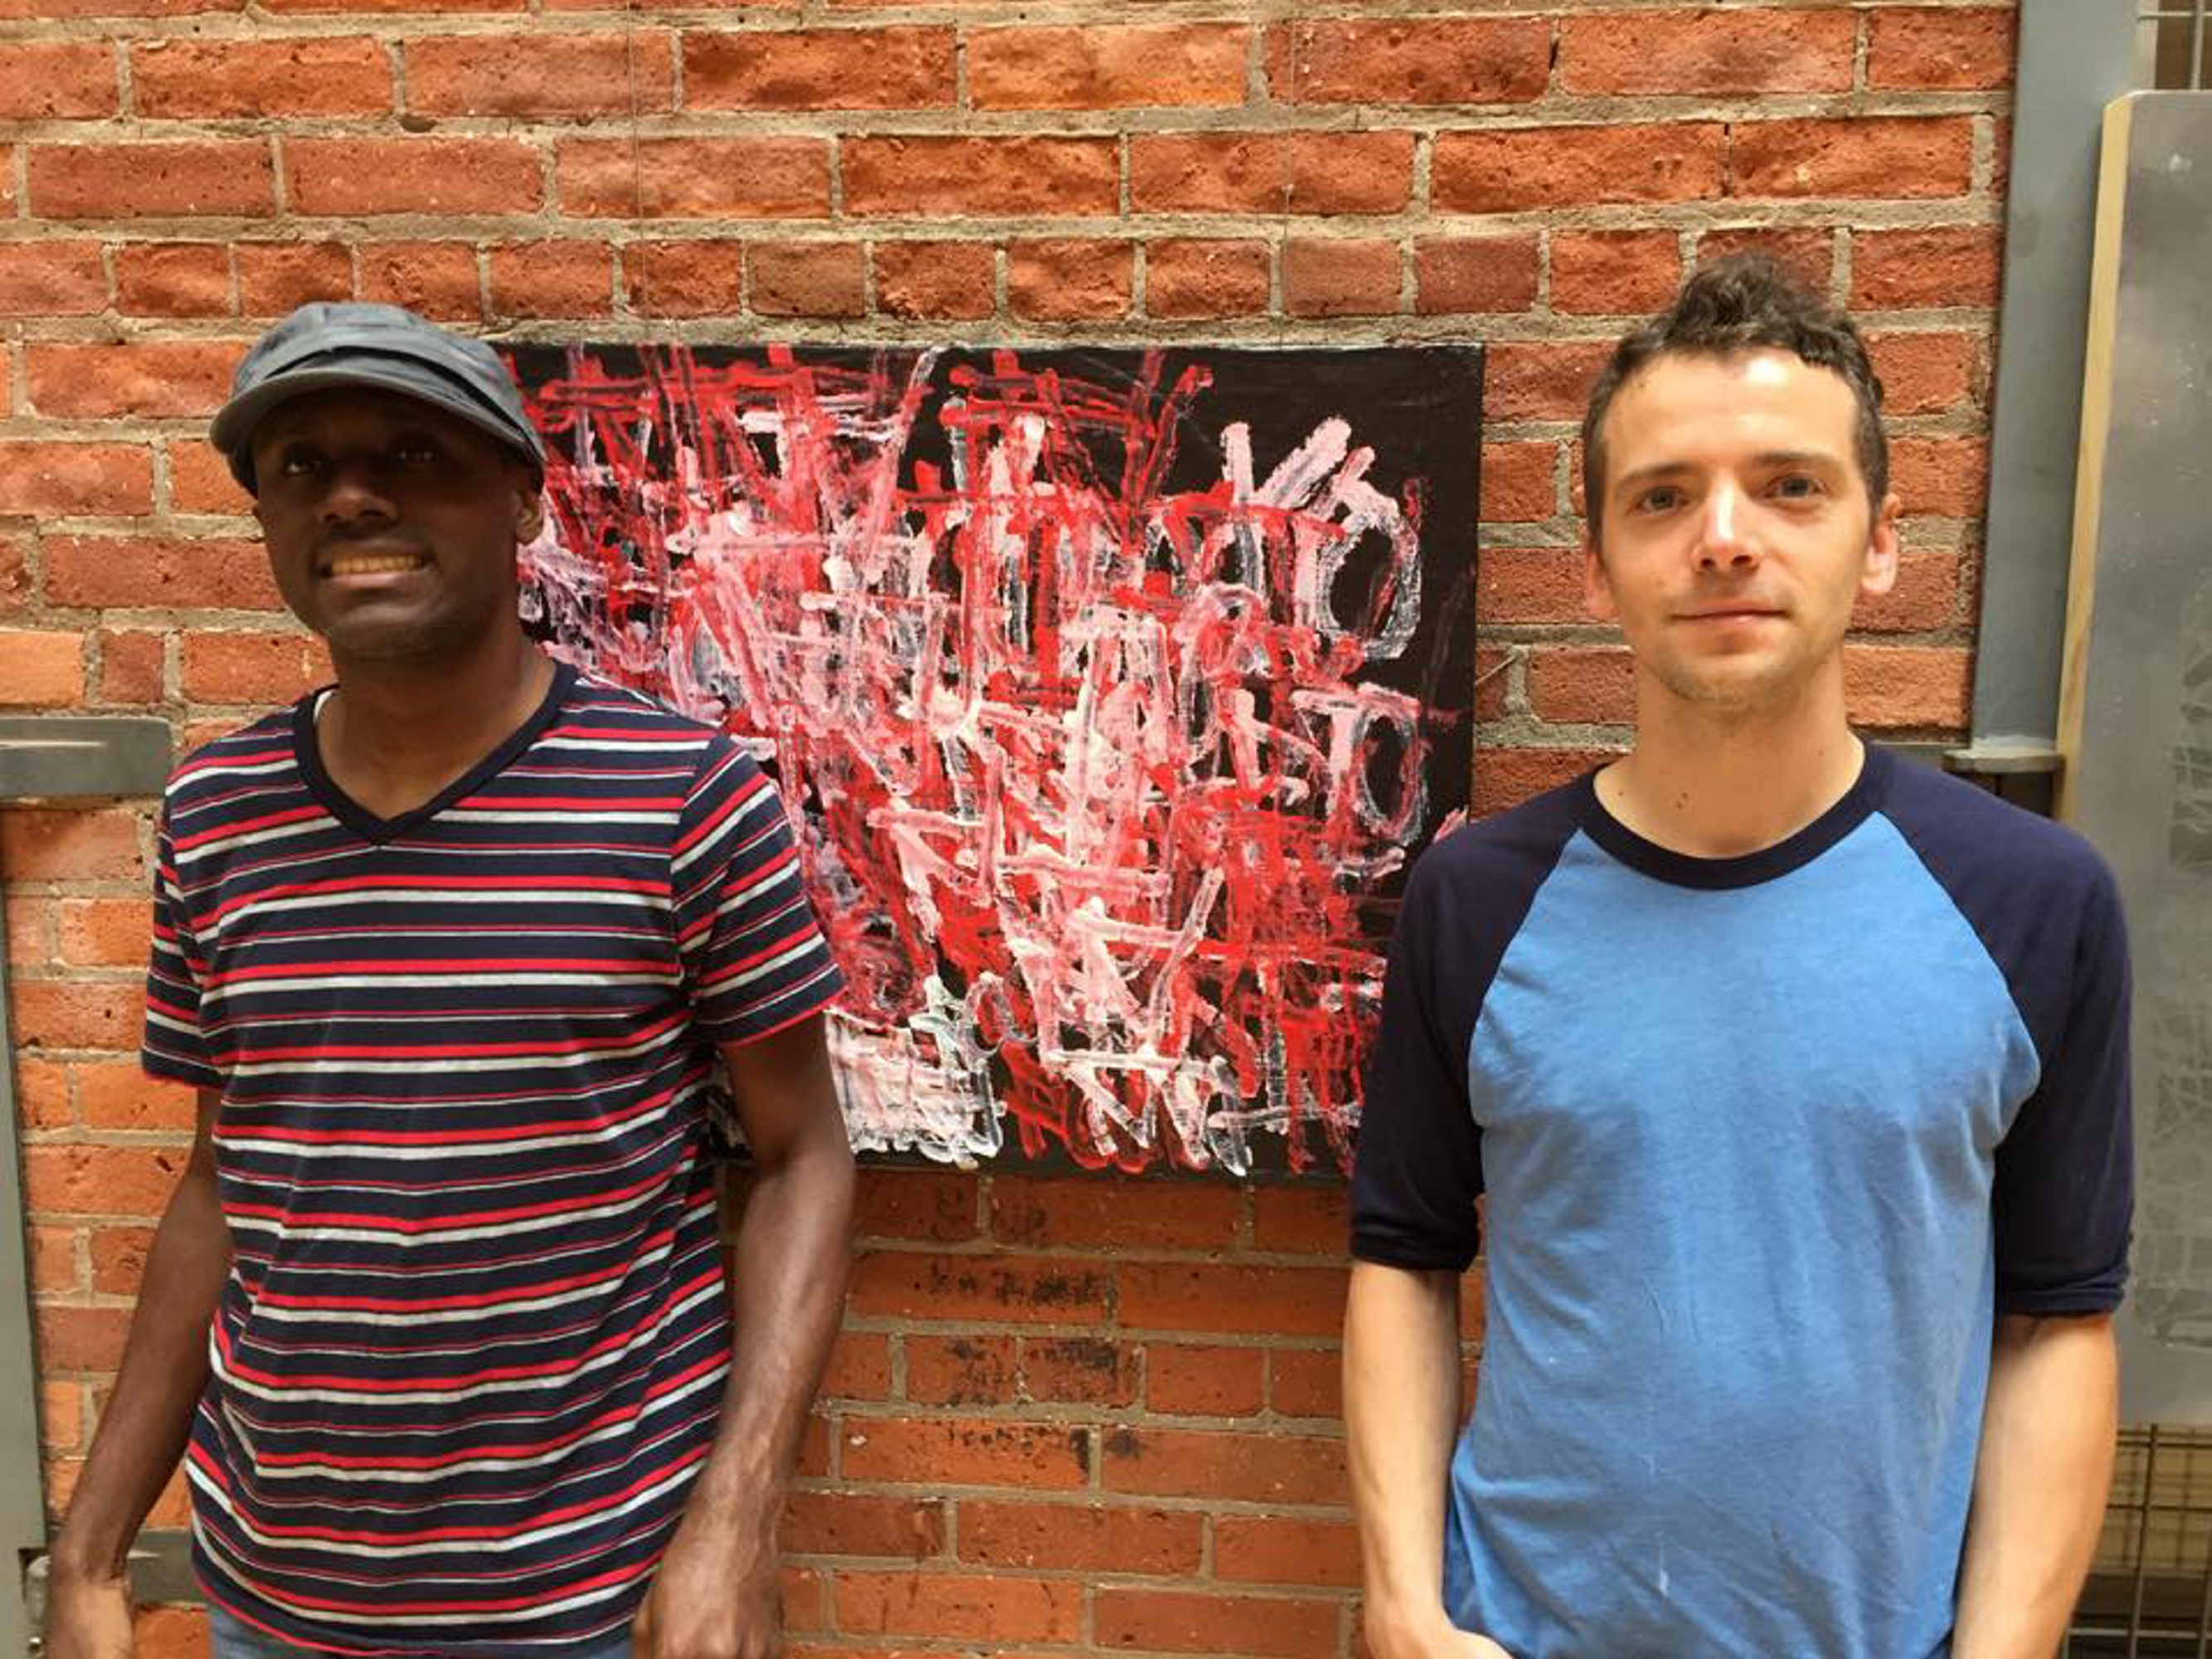 Artists Langston Gardner, left, and Kyle Butler collaborated on an art show running through Sept. 3 in Autism Services on Elmwood Avenue.